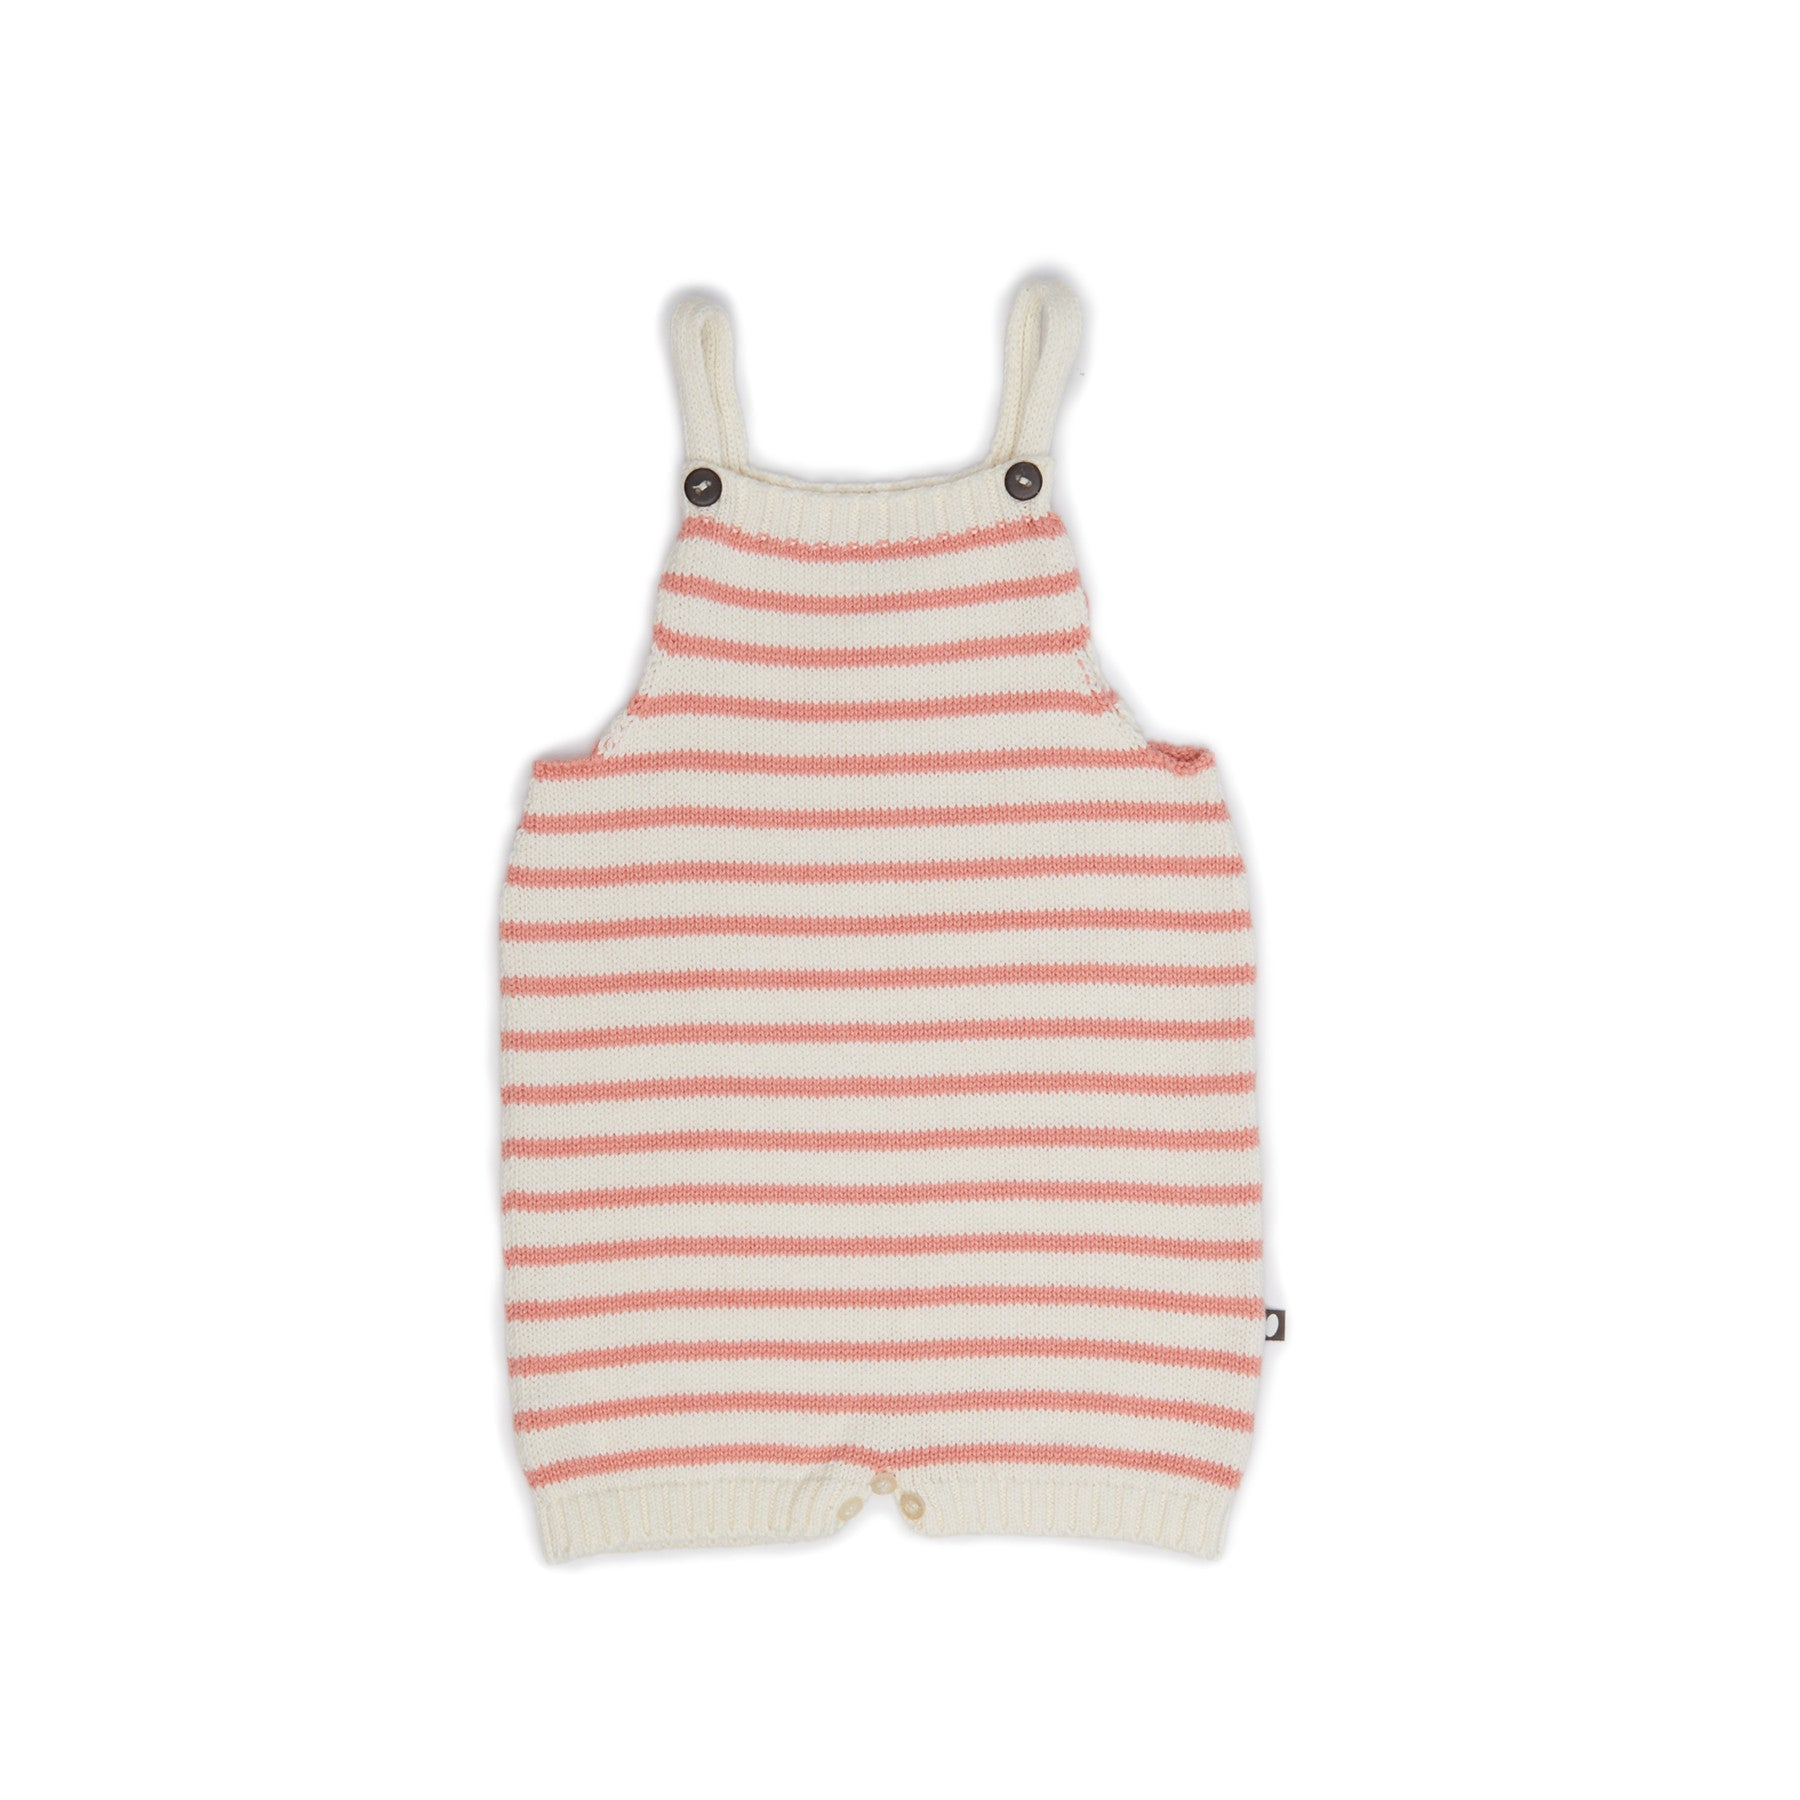 Oeuf Cream/Peach Stripes Knit Romper - Ladida